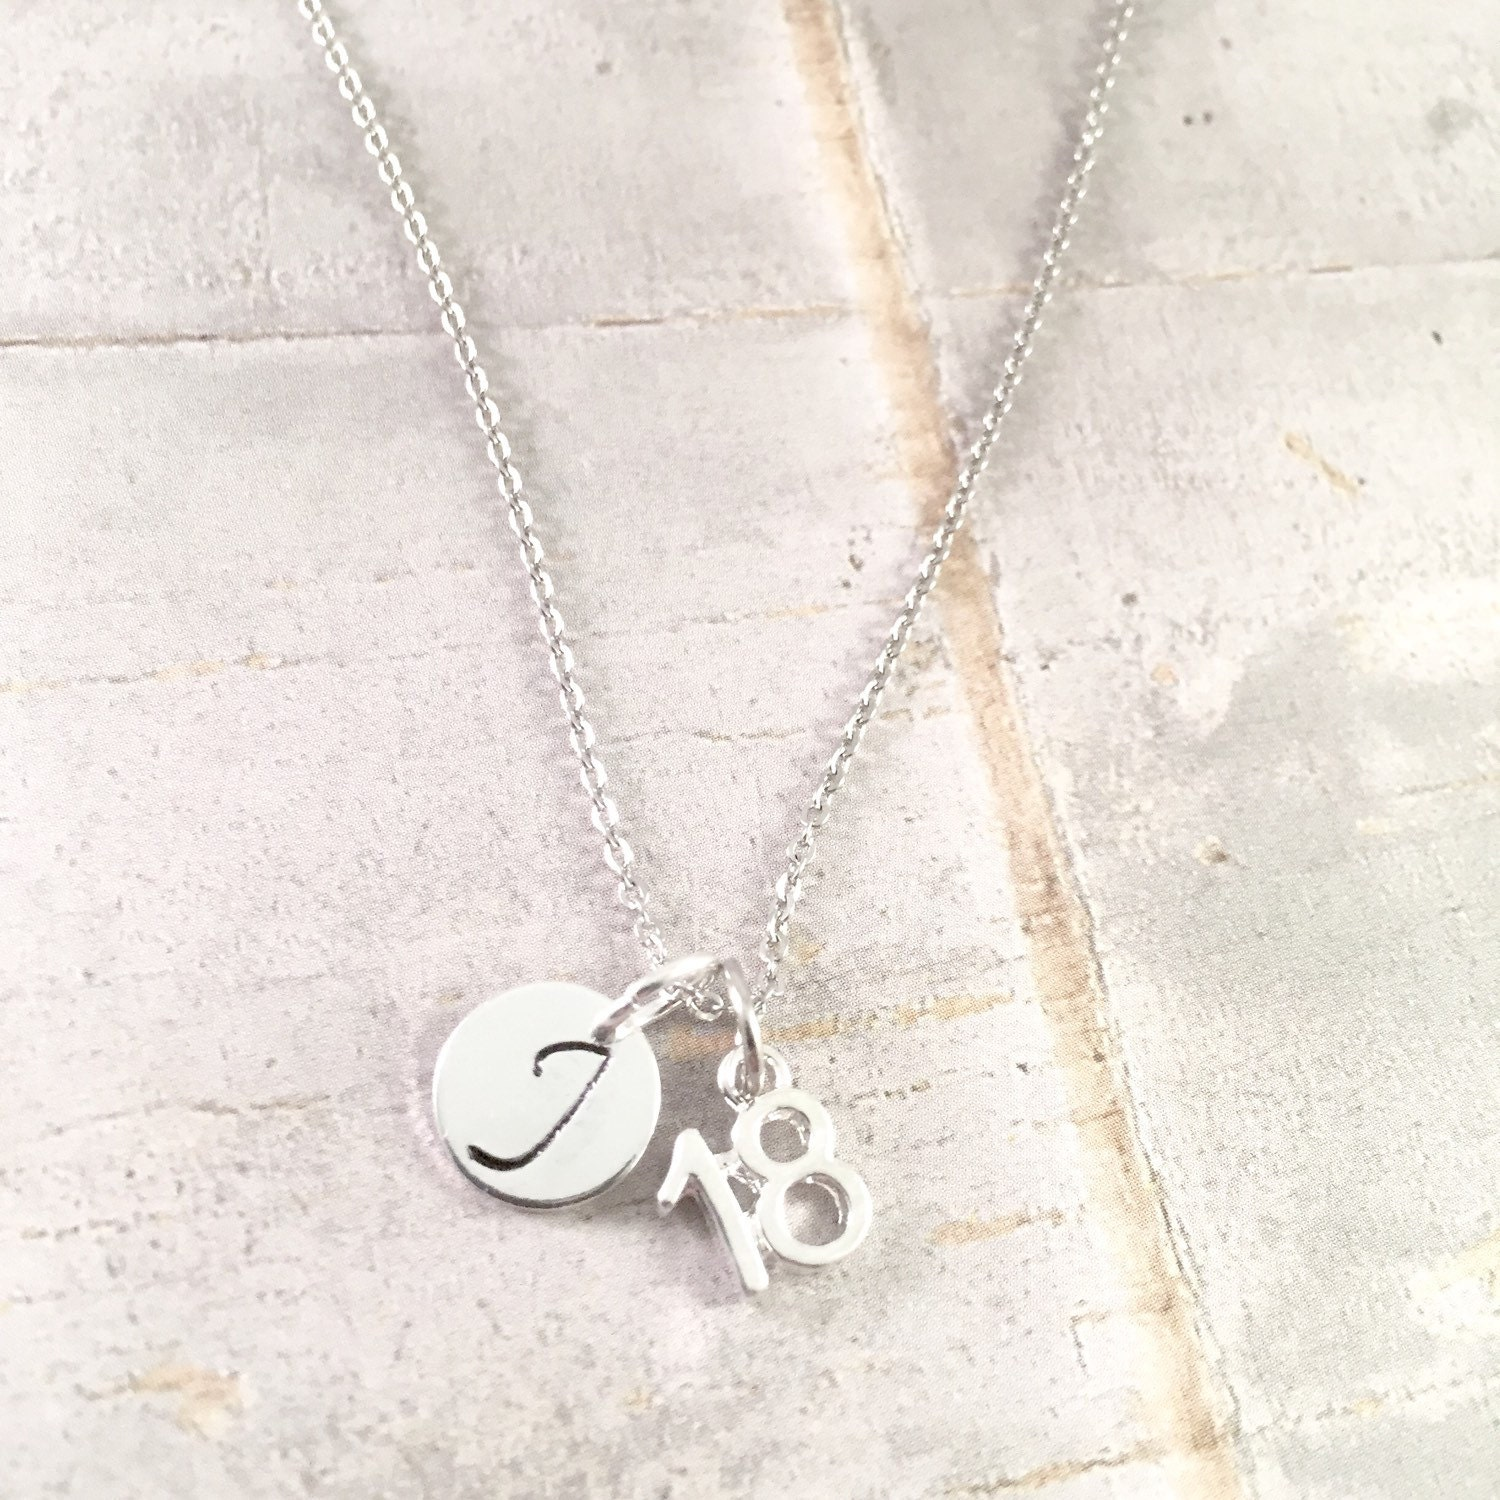 18th Birthday Heart Initial Bracelet 18th Birthday Jewelry: Birthday Necklace Number 18 Charm Necklace 18th Birthday